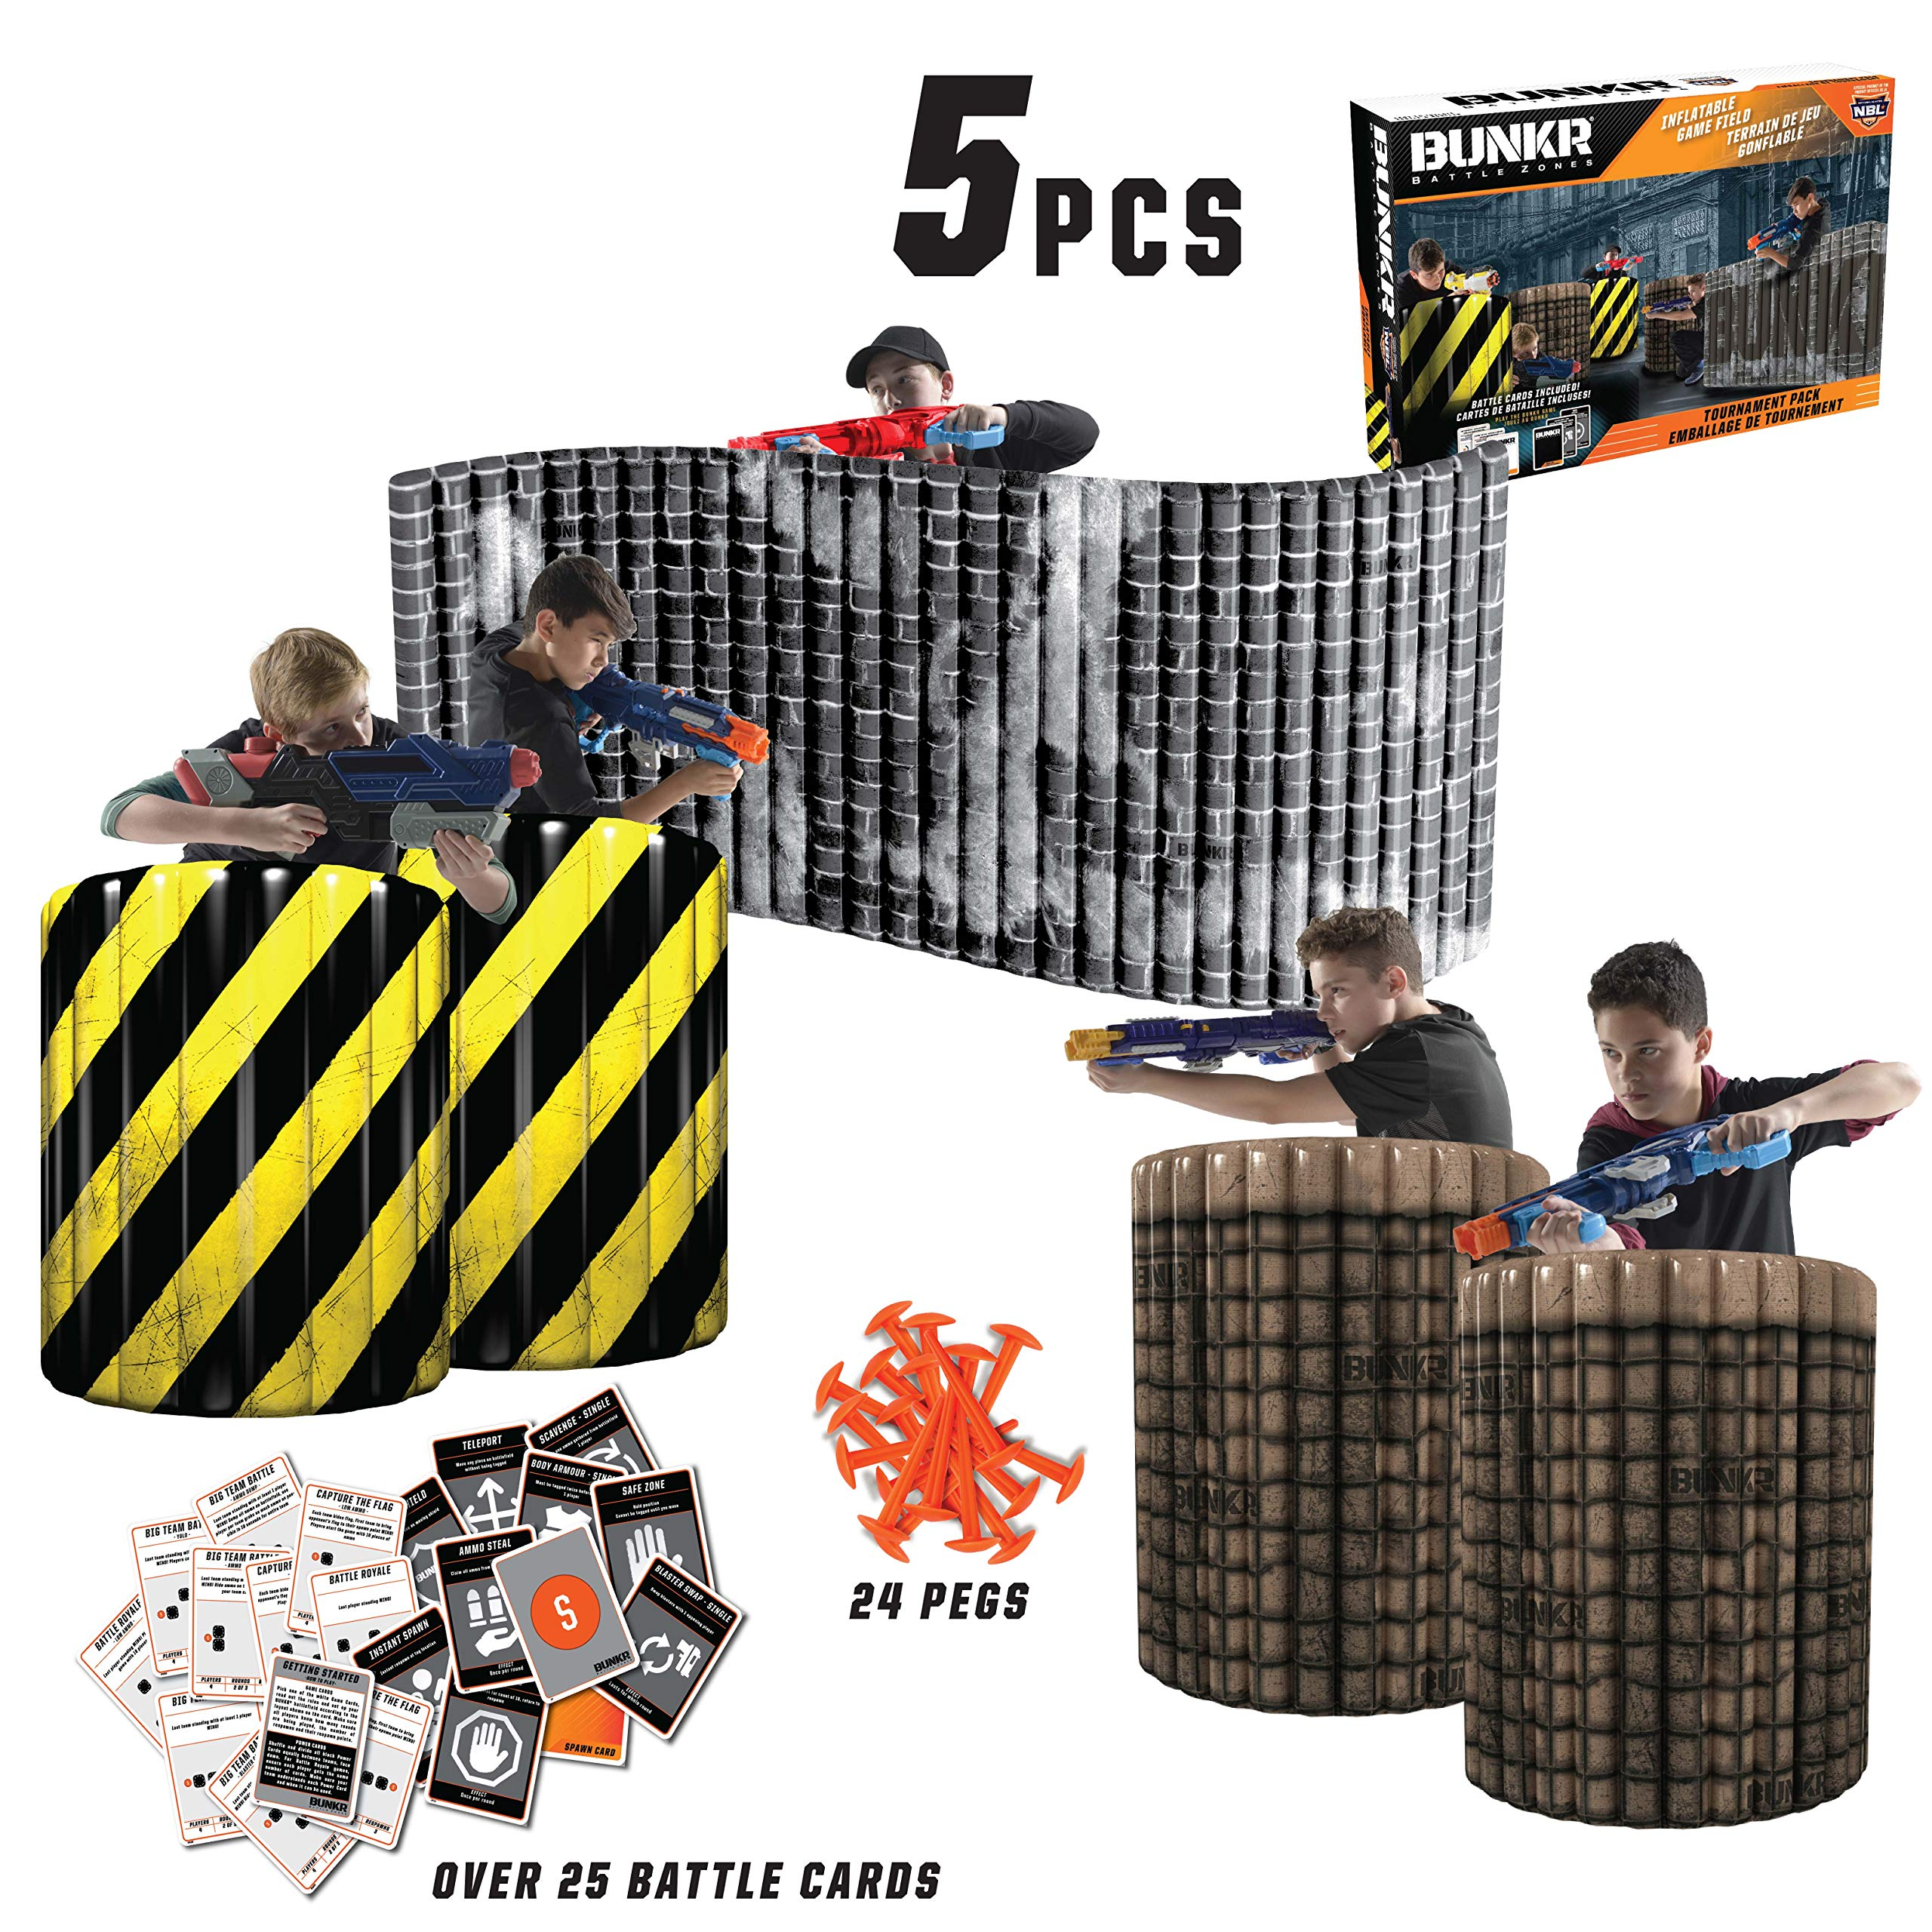 BUNKR Inflatable Battlezone Tournament Set (5 Piece), City Zone. (Compatible with Nerf, Laser X, X-Shot and Boomco), Black/Yellow/Grey/Brown/Beige by BUNKR